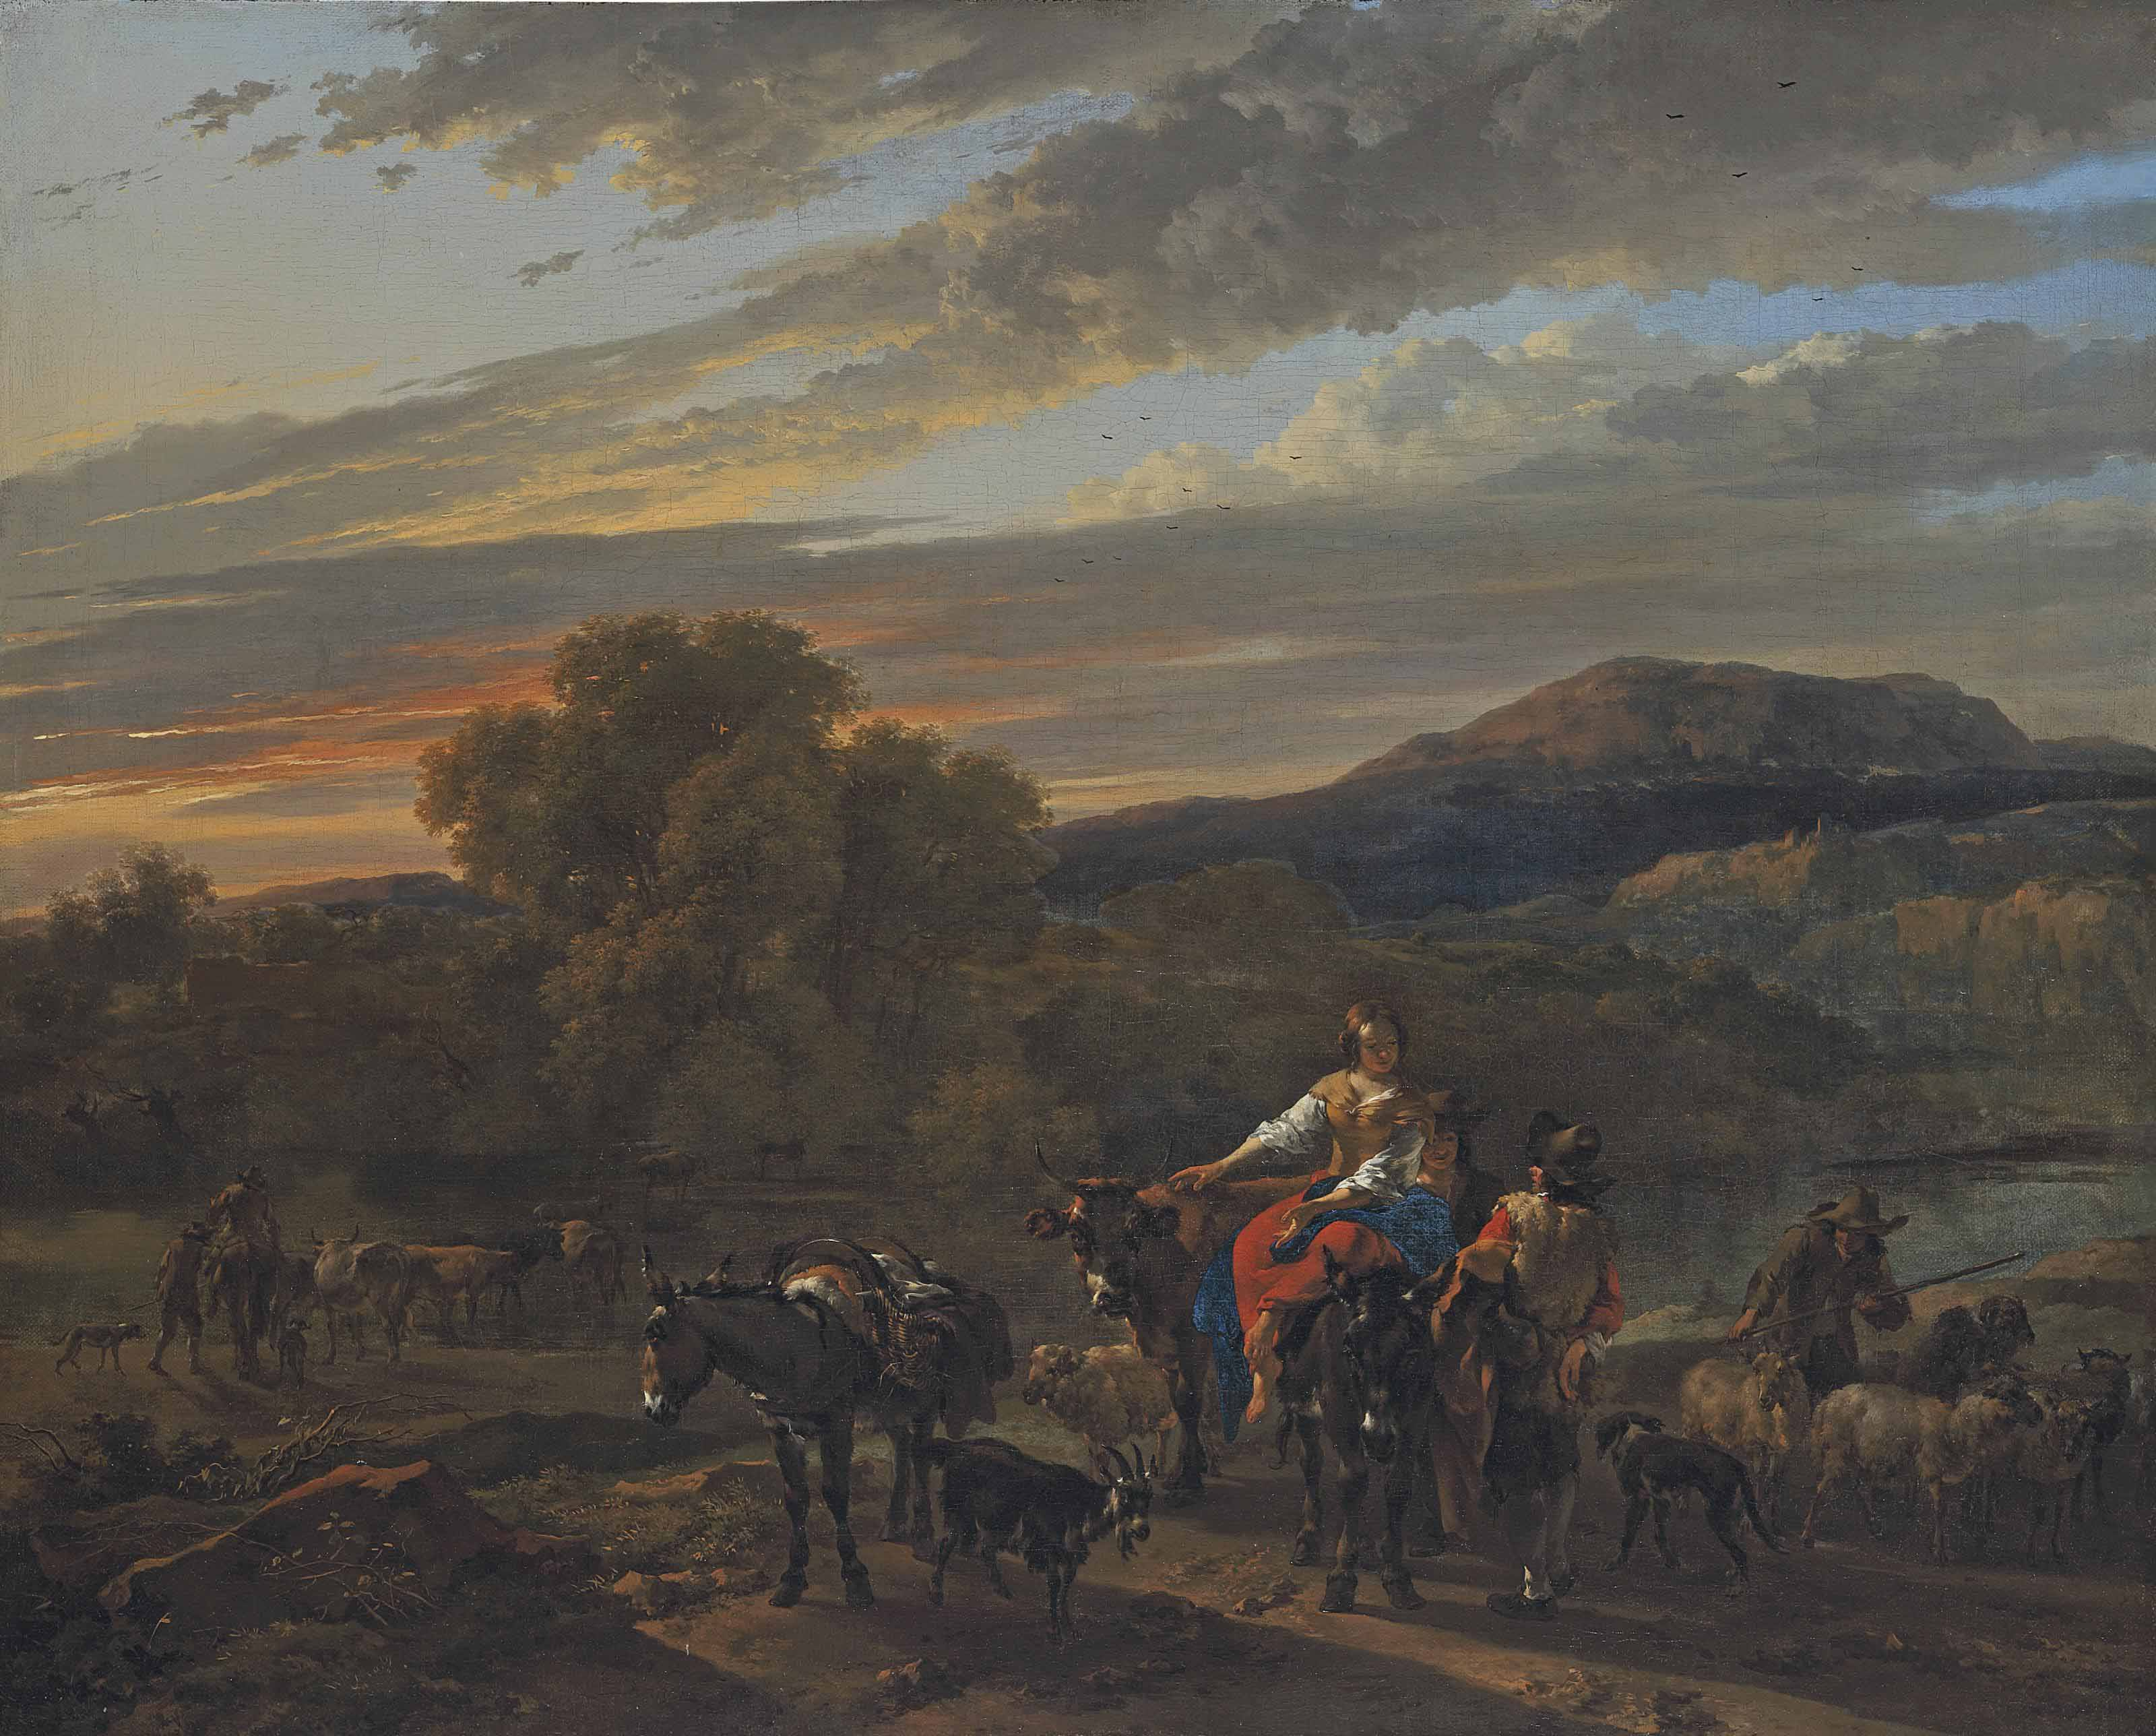 An Italiante landscape with shepherds, cows and sheep